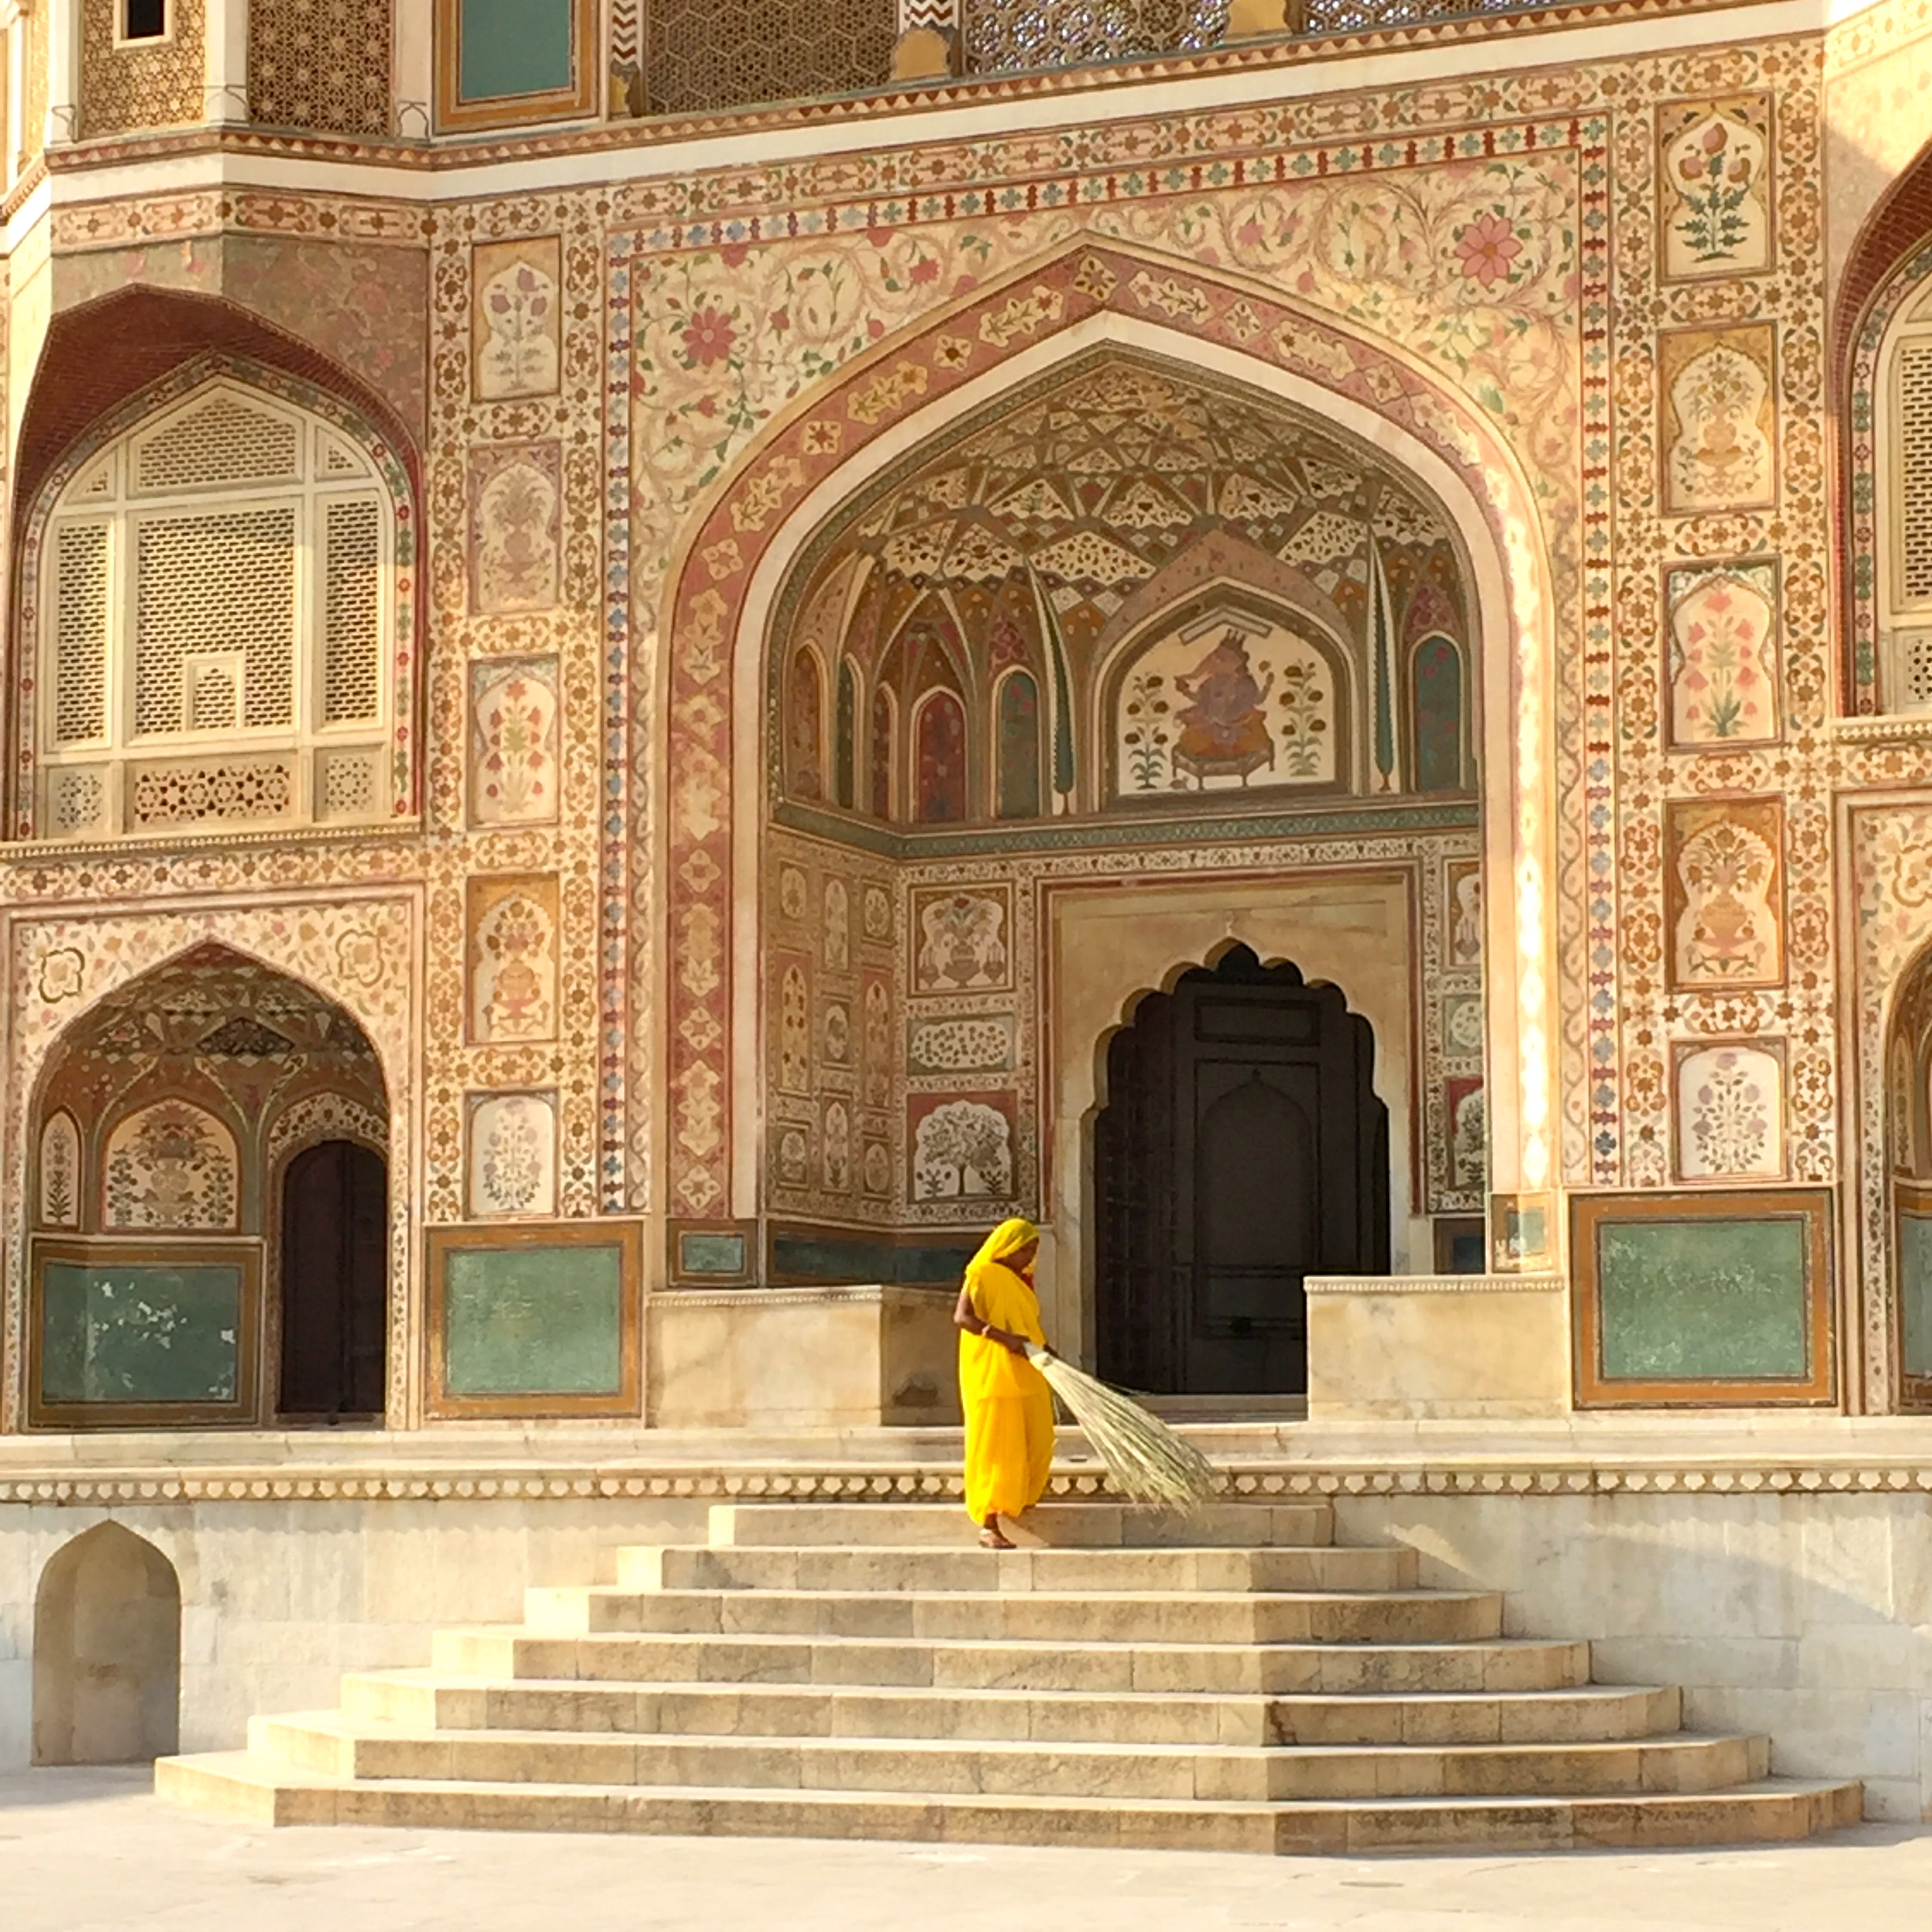 Woman sweeping the steps of the Amber Palace, Jaipur